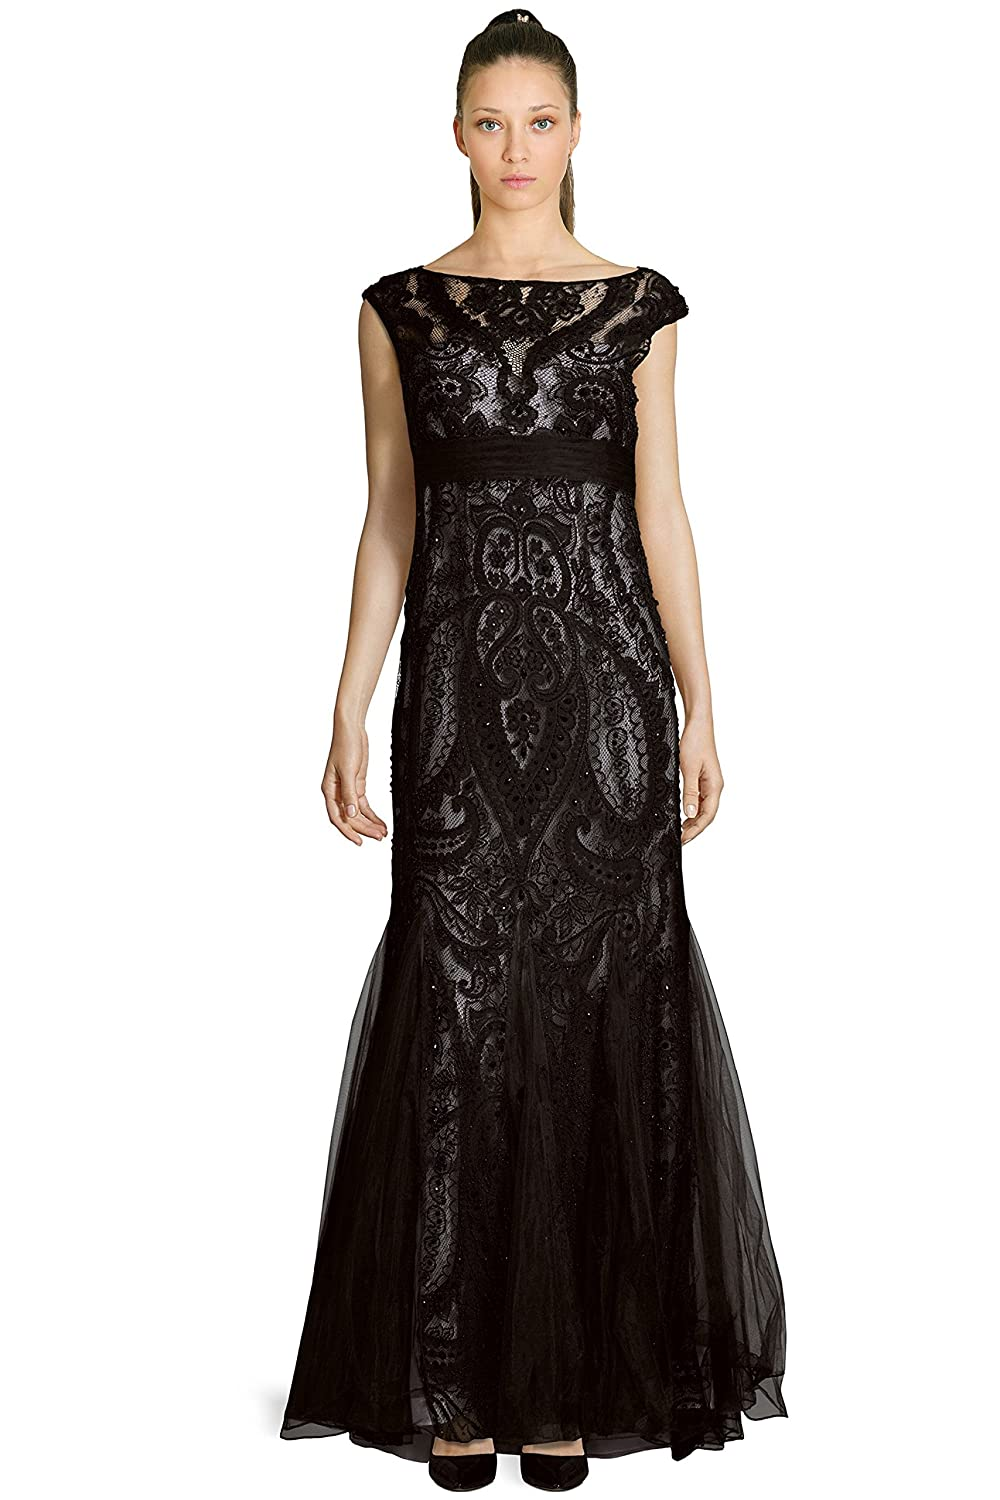 Teri Jon Embellished Lace Cap Sleeve Evening Gown Dress At Amazon